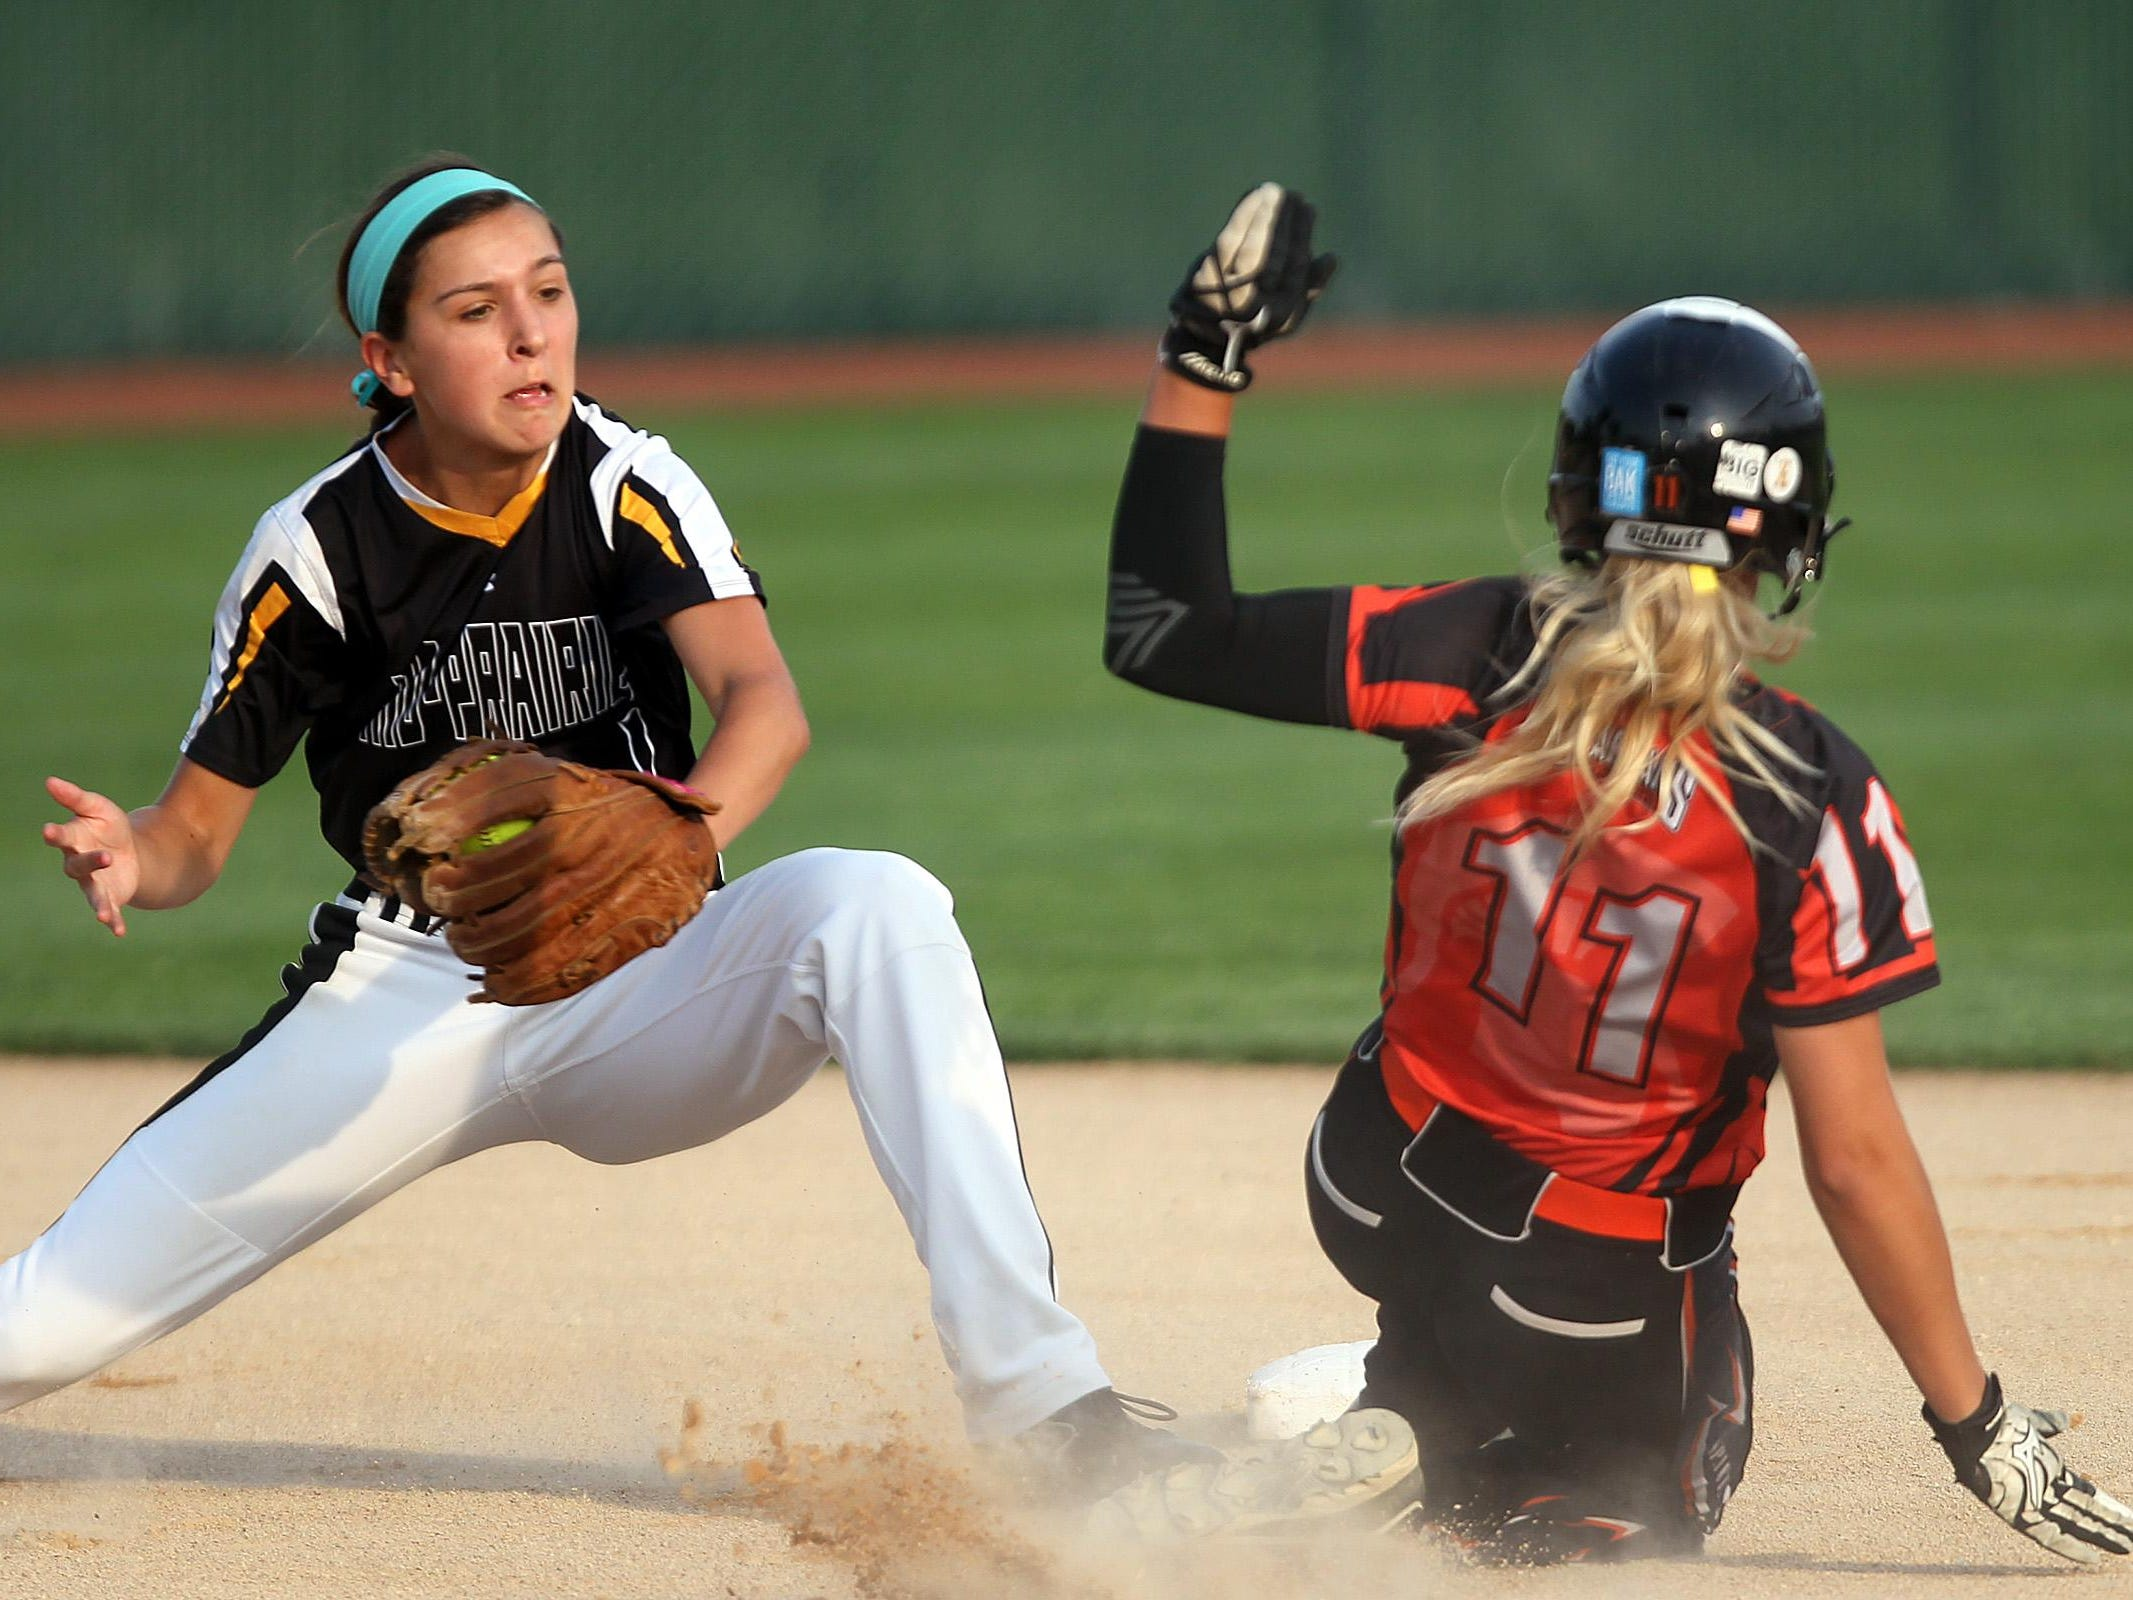 Mid-Prairie's Alex Rath tags out Solon's Emily Ira at second base during their regional game at Solon on Friday, July 10, 2015. David Scrivner / Iowa City Press-Citizen